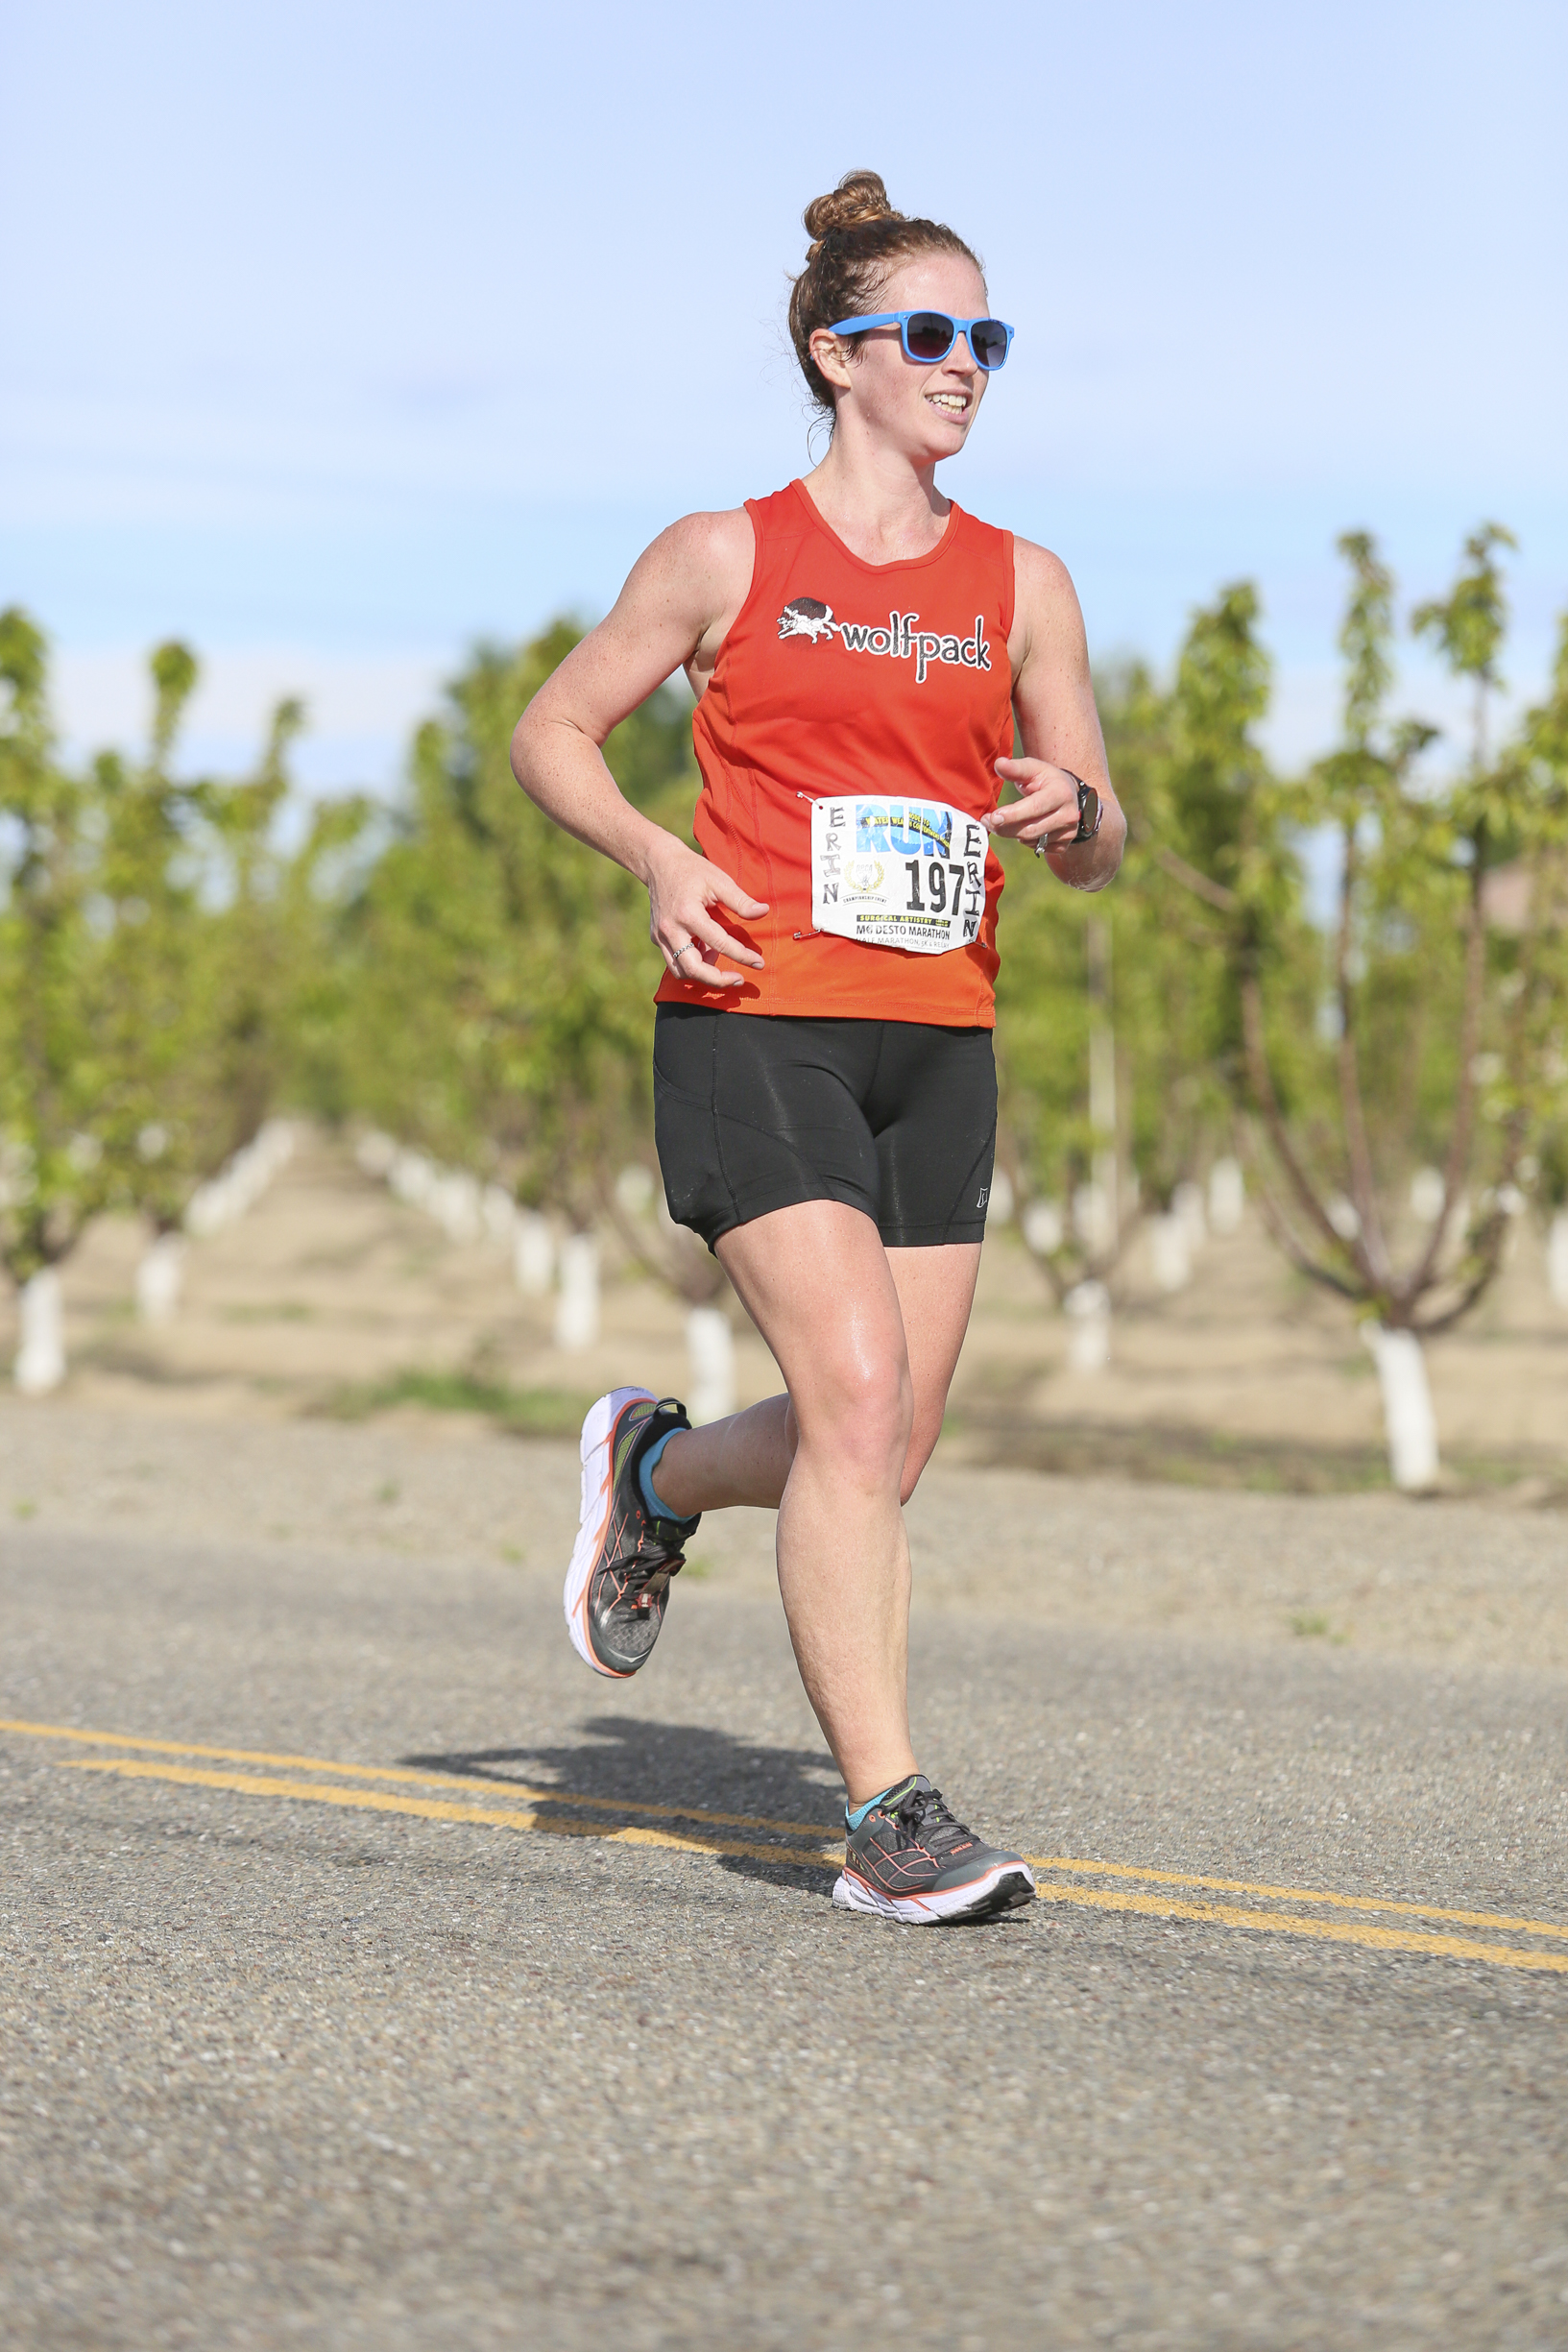 the race caught 15 different images of me, and I have a shit-eating grin in virtually all of them. It's pretty awesome. Note the red face here; it was getting hot. (also: almond trees in the background, perhaps)